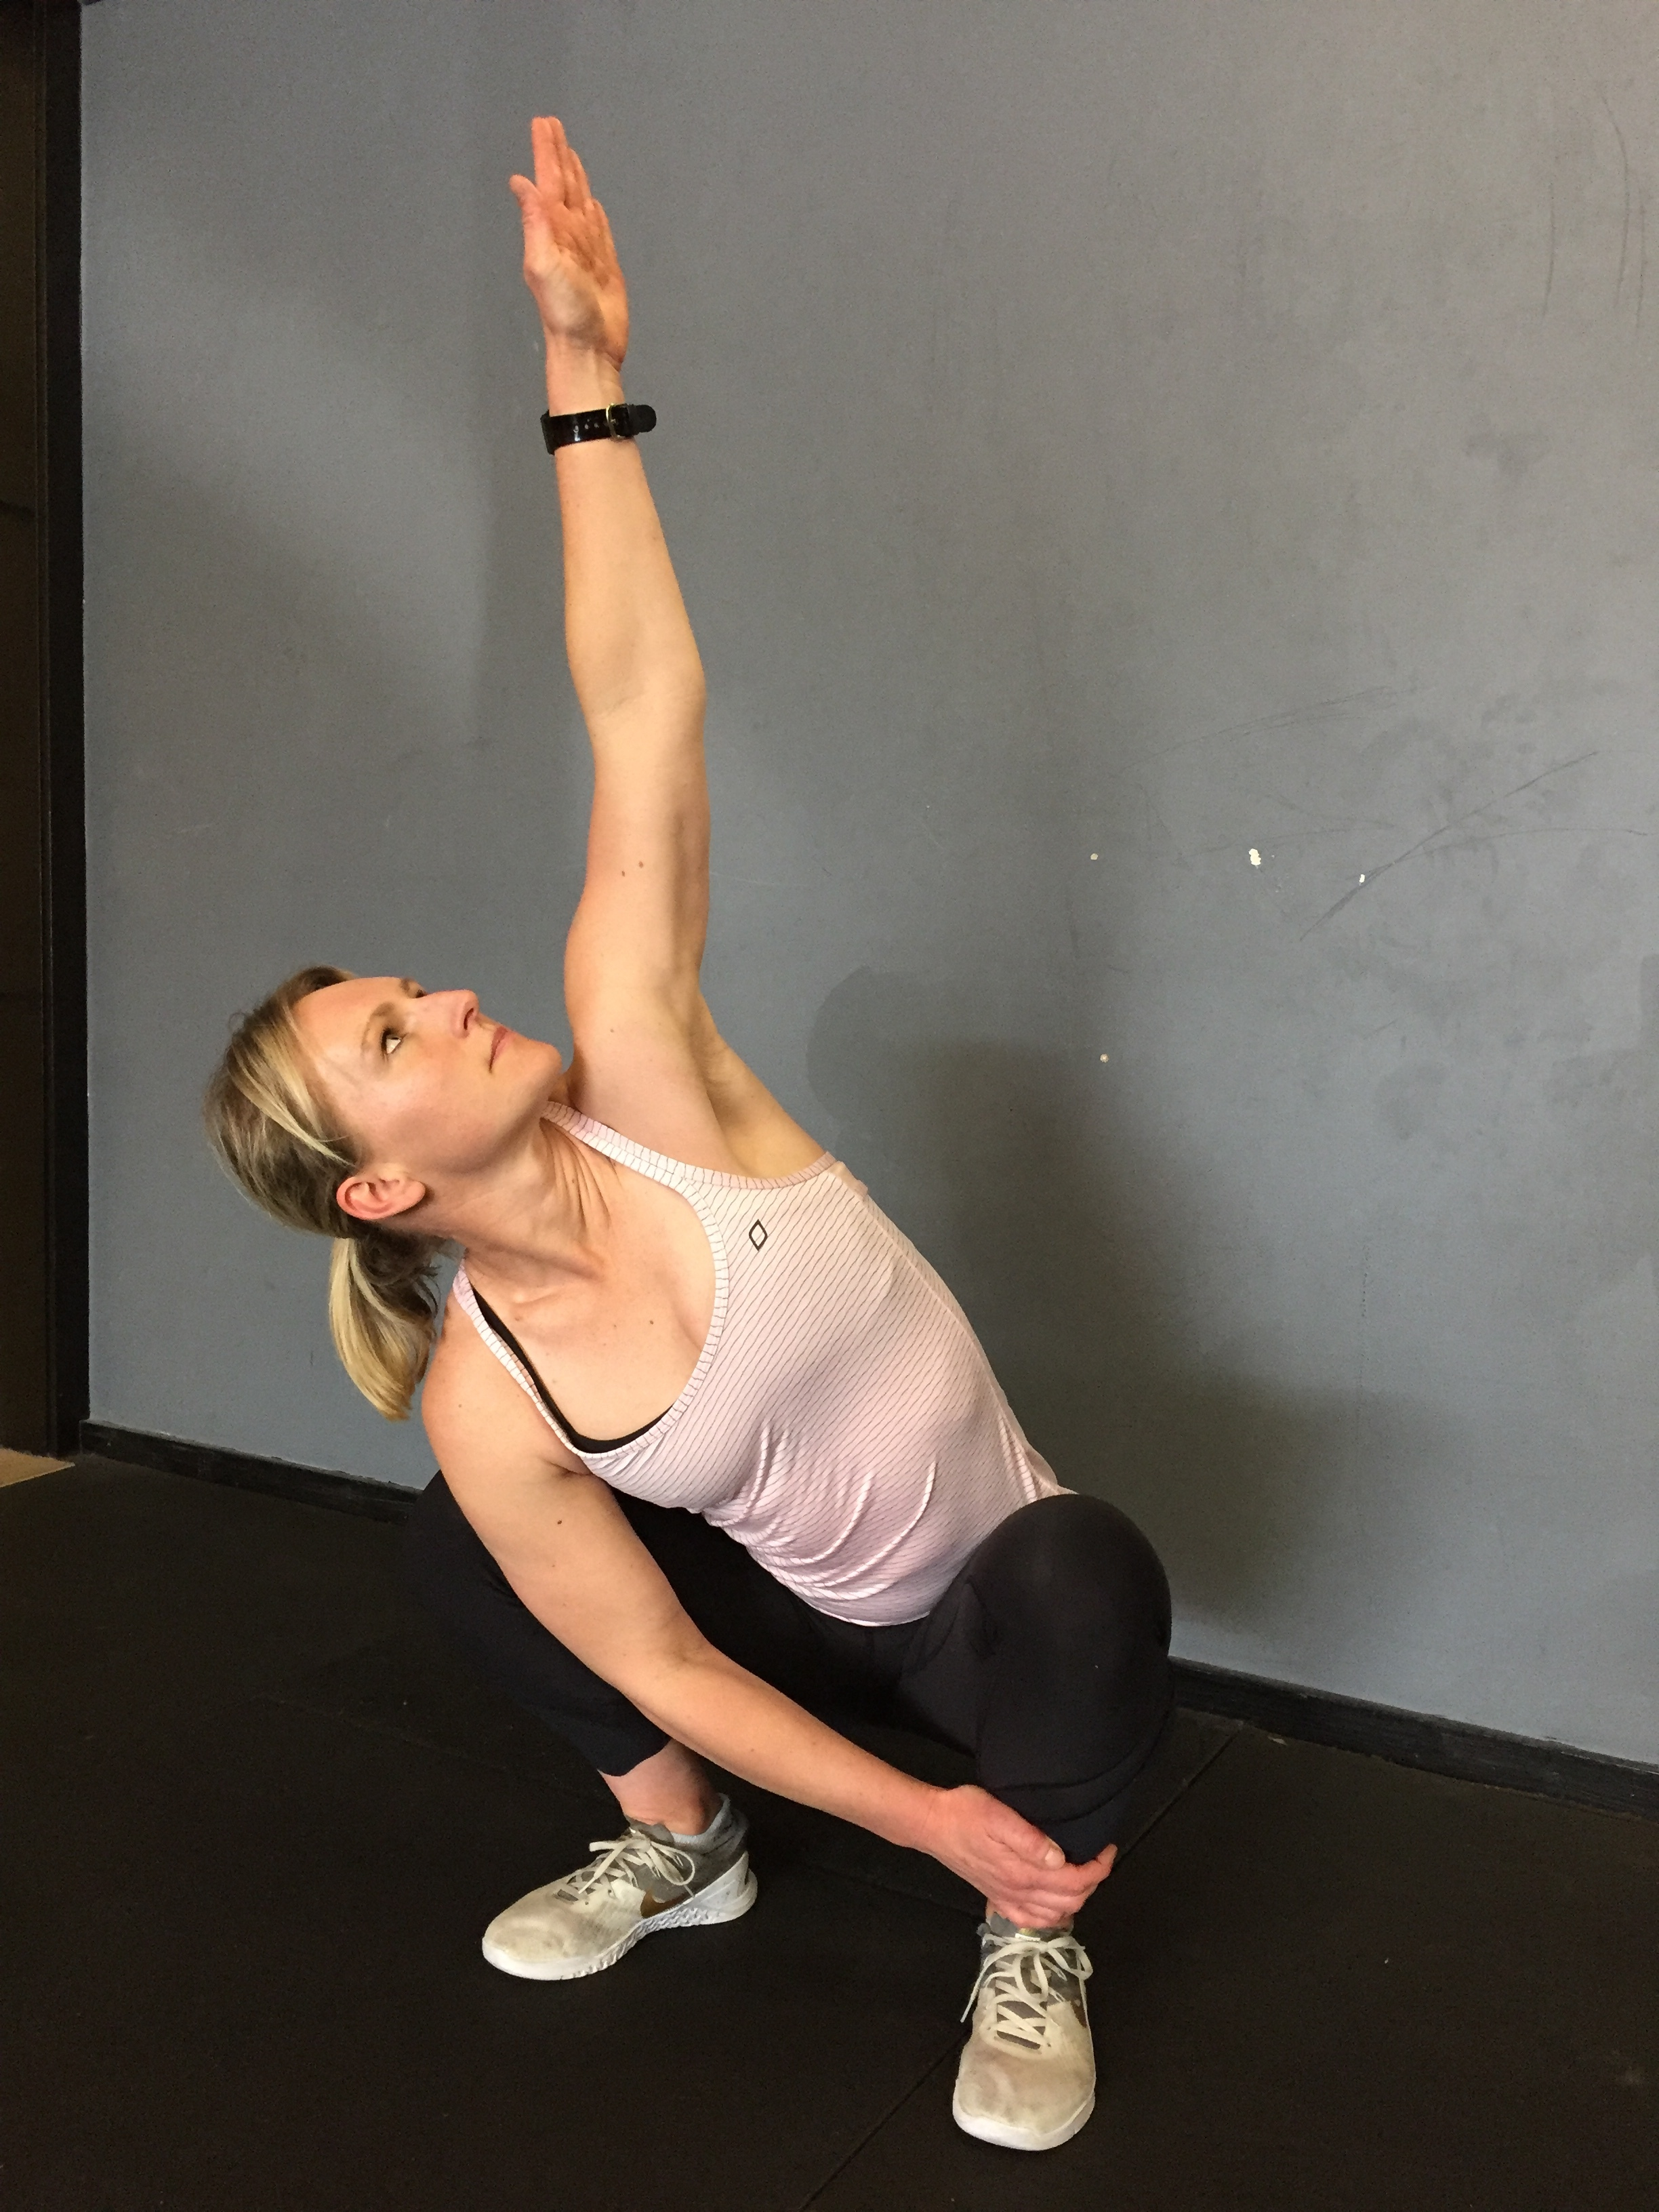 Straighten the elbow, hold for 3-5 seconds. Perform 3-5 sides on both sides, alternating.